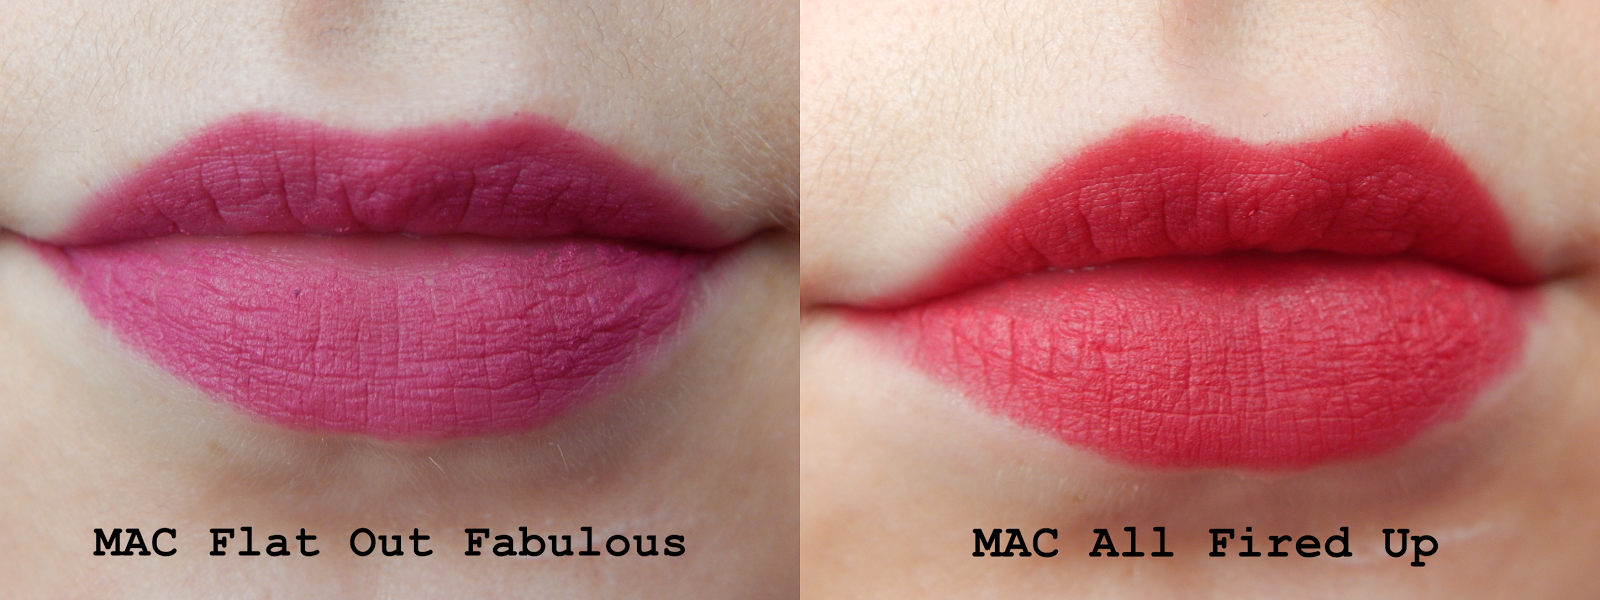 Favori TanjaWhatsername: Review: MAC All Fired Up & Flat Out Fabulous XZ42